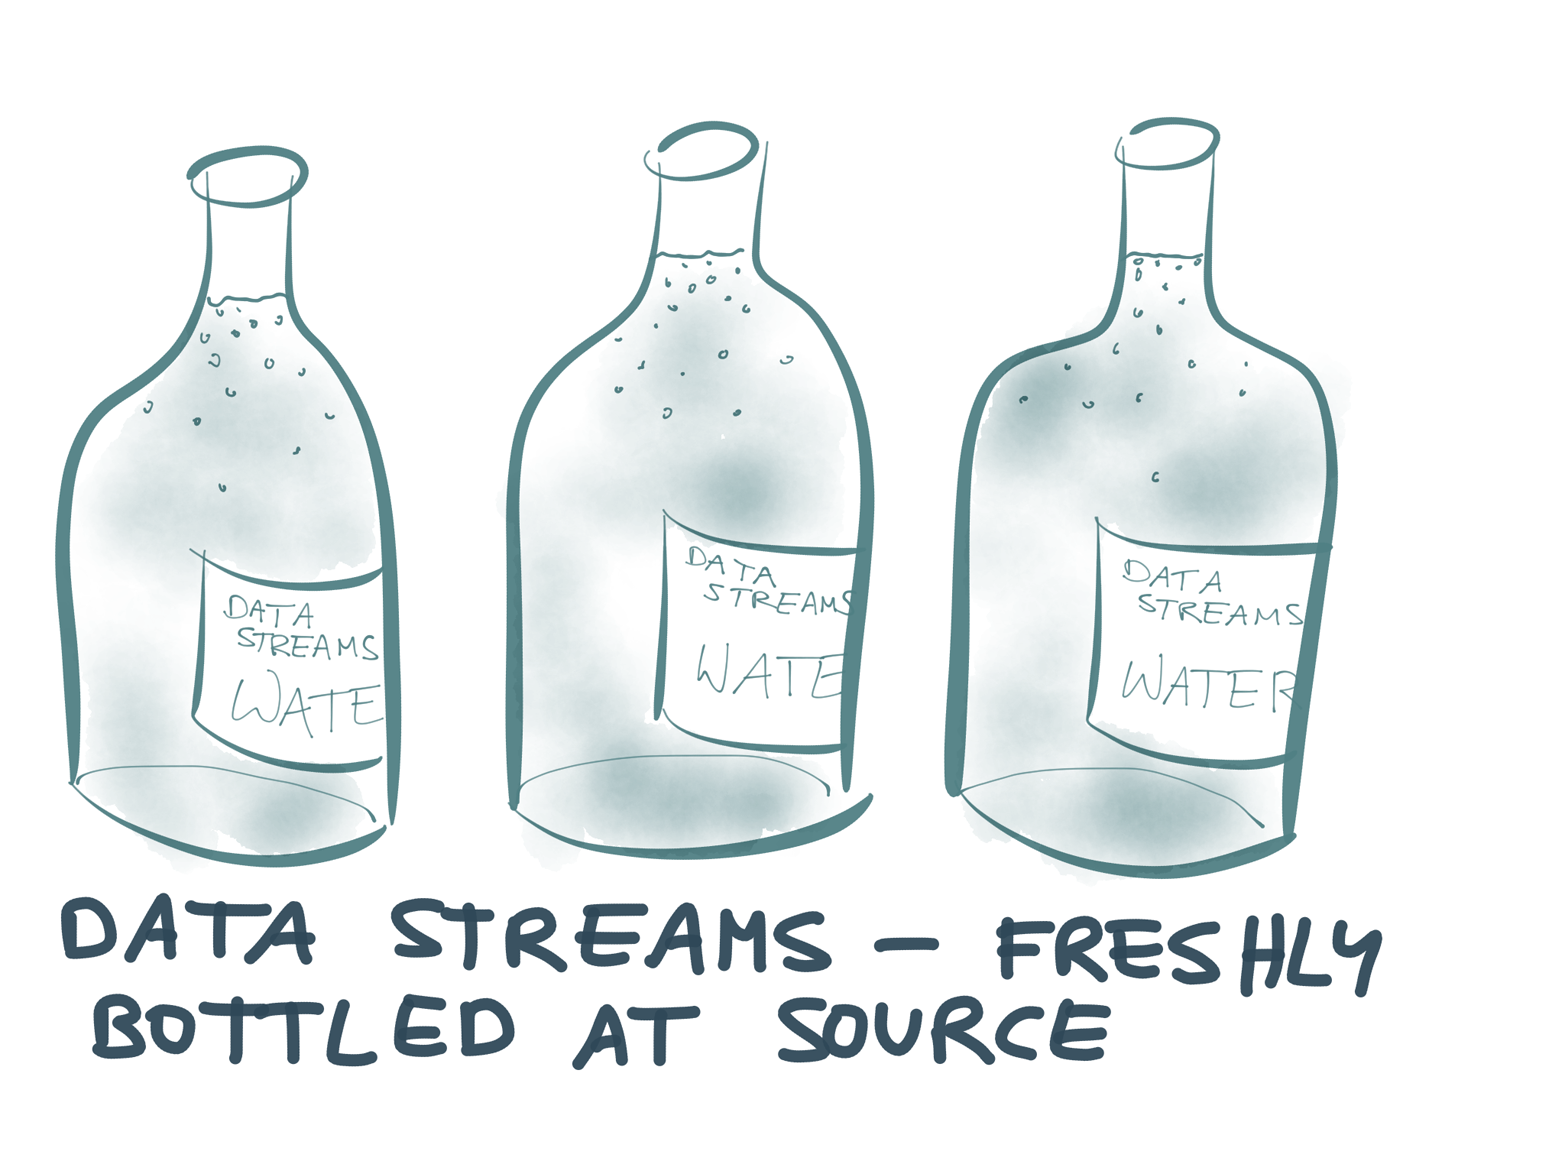 Bottled Water is what you get if you take a stream and package it up in a form that's easy to transport and consume.